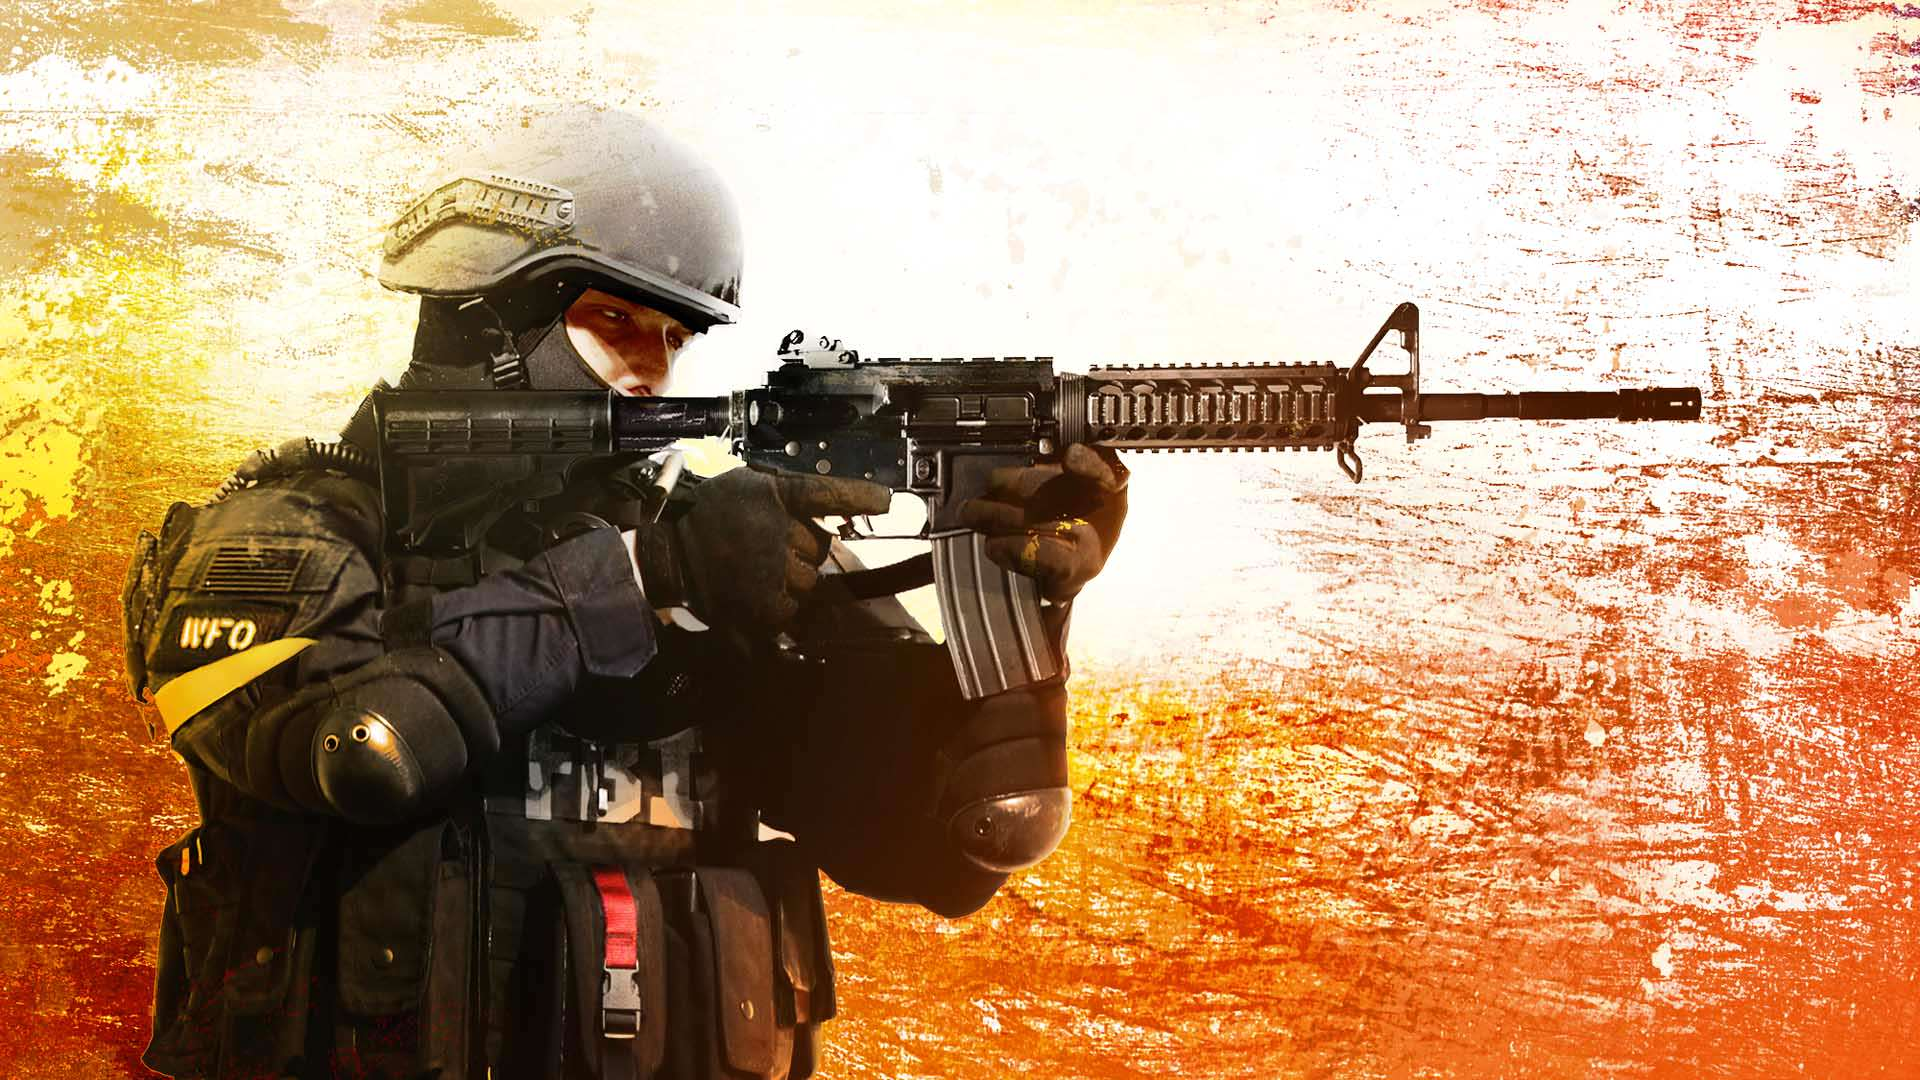 Nine Awesome Counter Strike: Global Offensive Plays 29c471623f64f8ef1a175fb341d2d79233958592